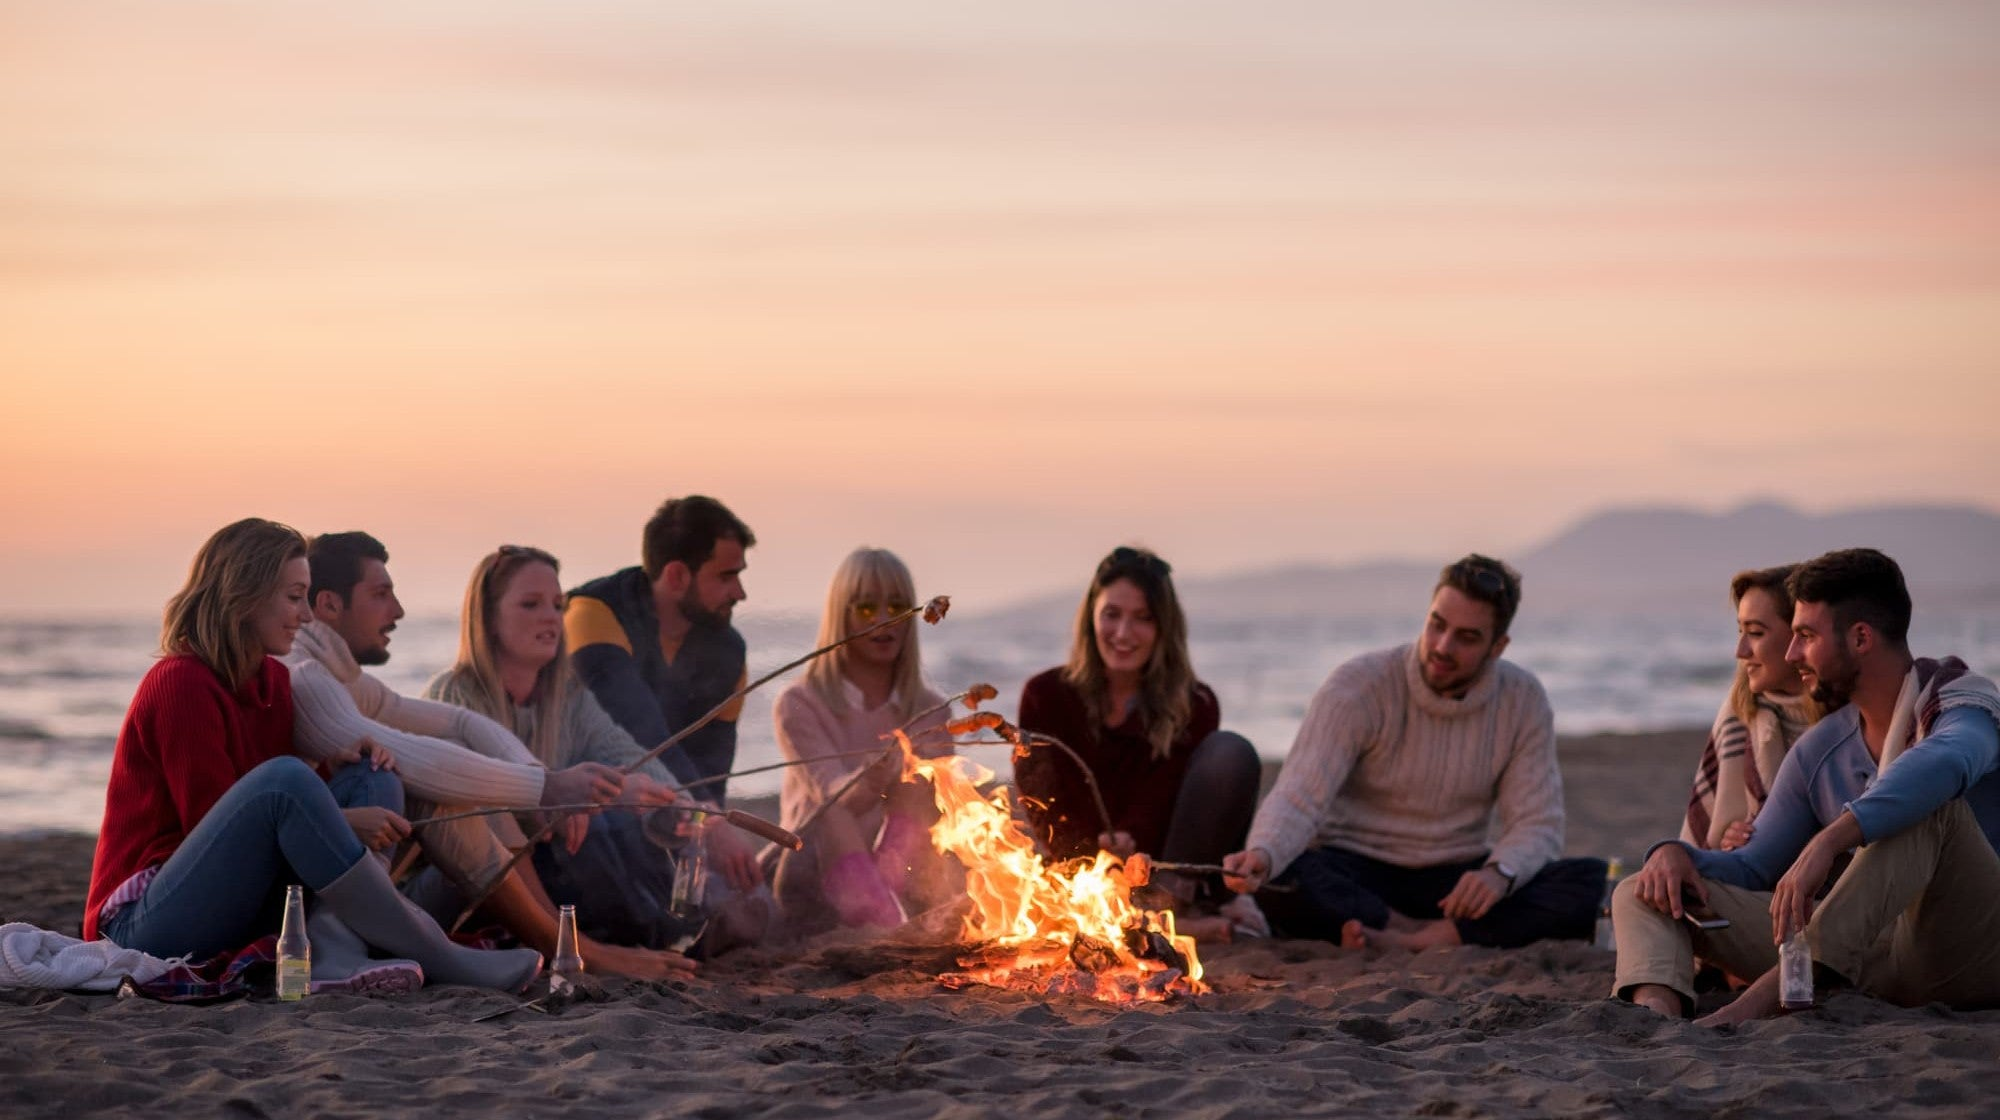 How To Build A Beach Bonfire And Light Your Fire Responsibly